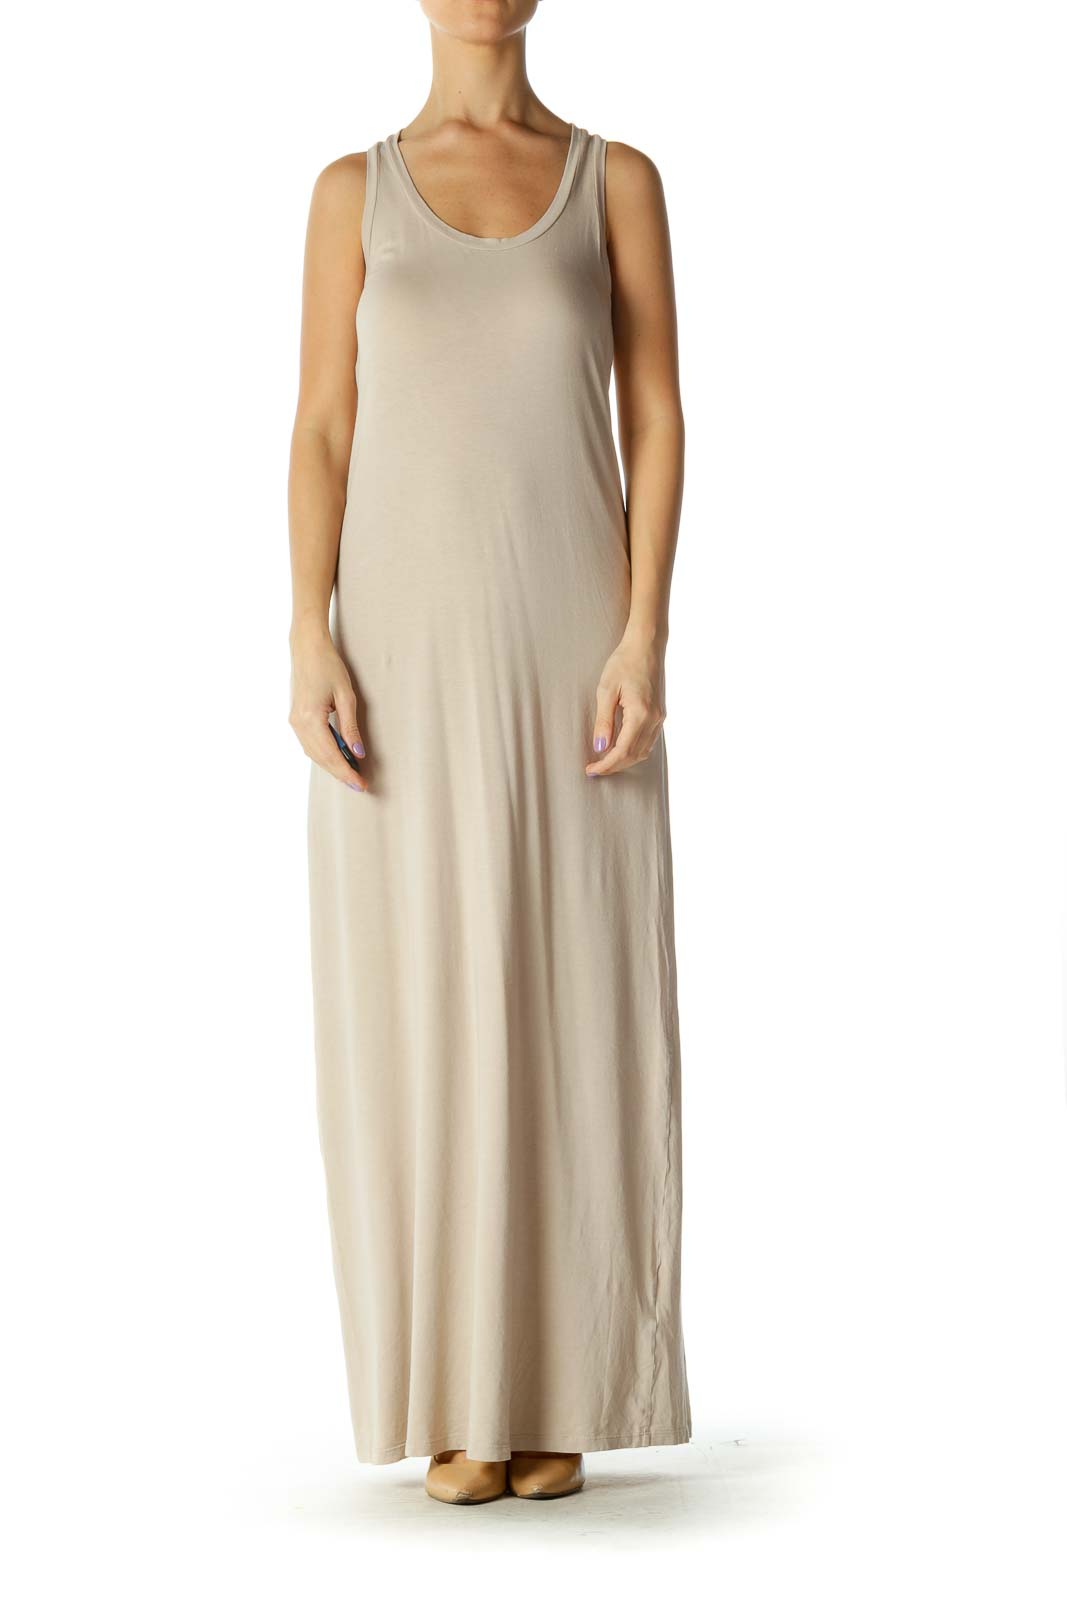 Beige Solid Casual Column Dress Front